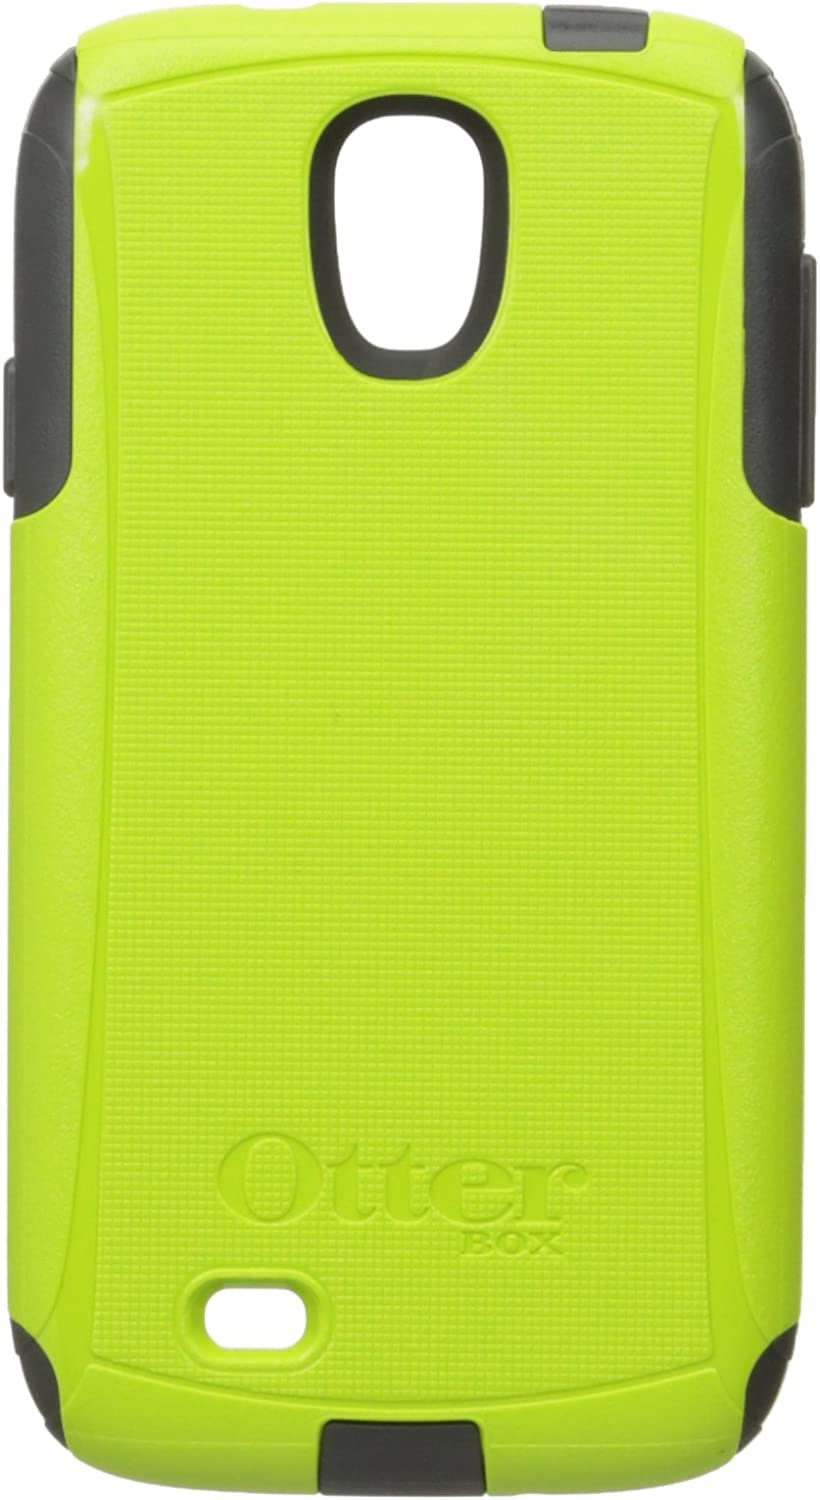 Otterbox Commuter Series Case for Samsung Galaxy S4 - Retail Packaging - Lime Green